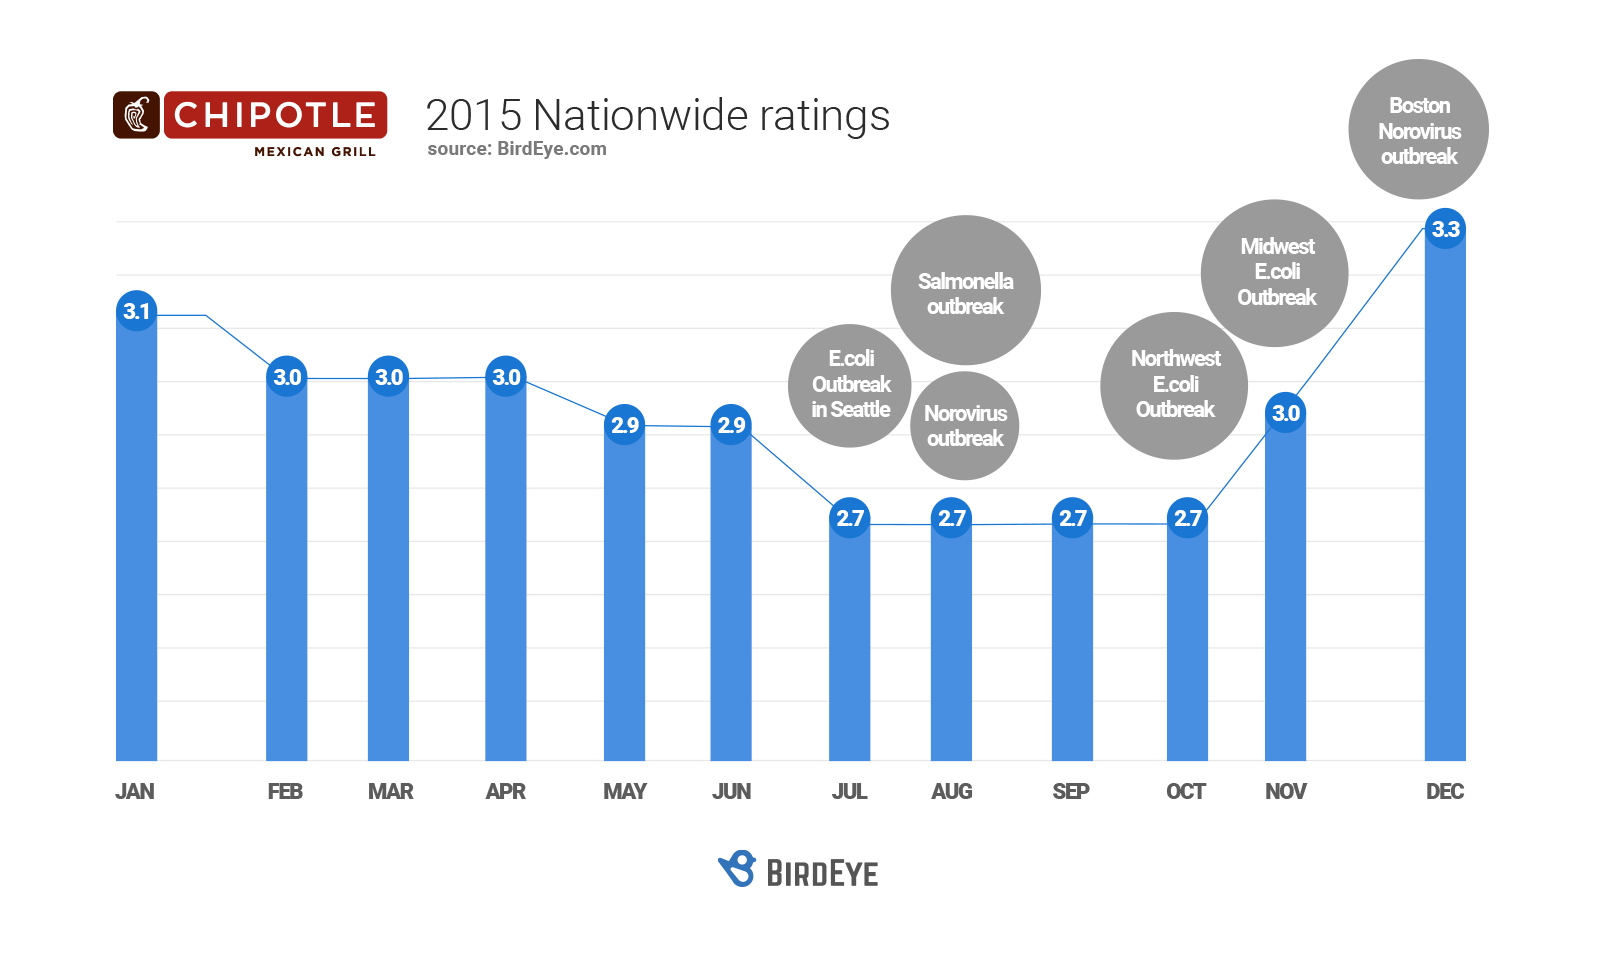 Chipotle_2015_ratings